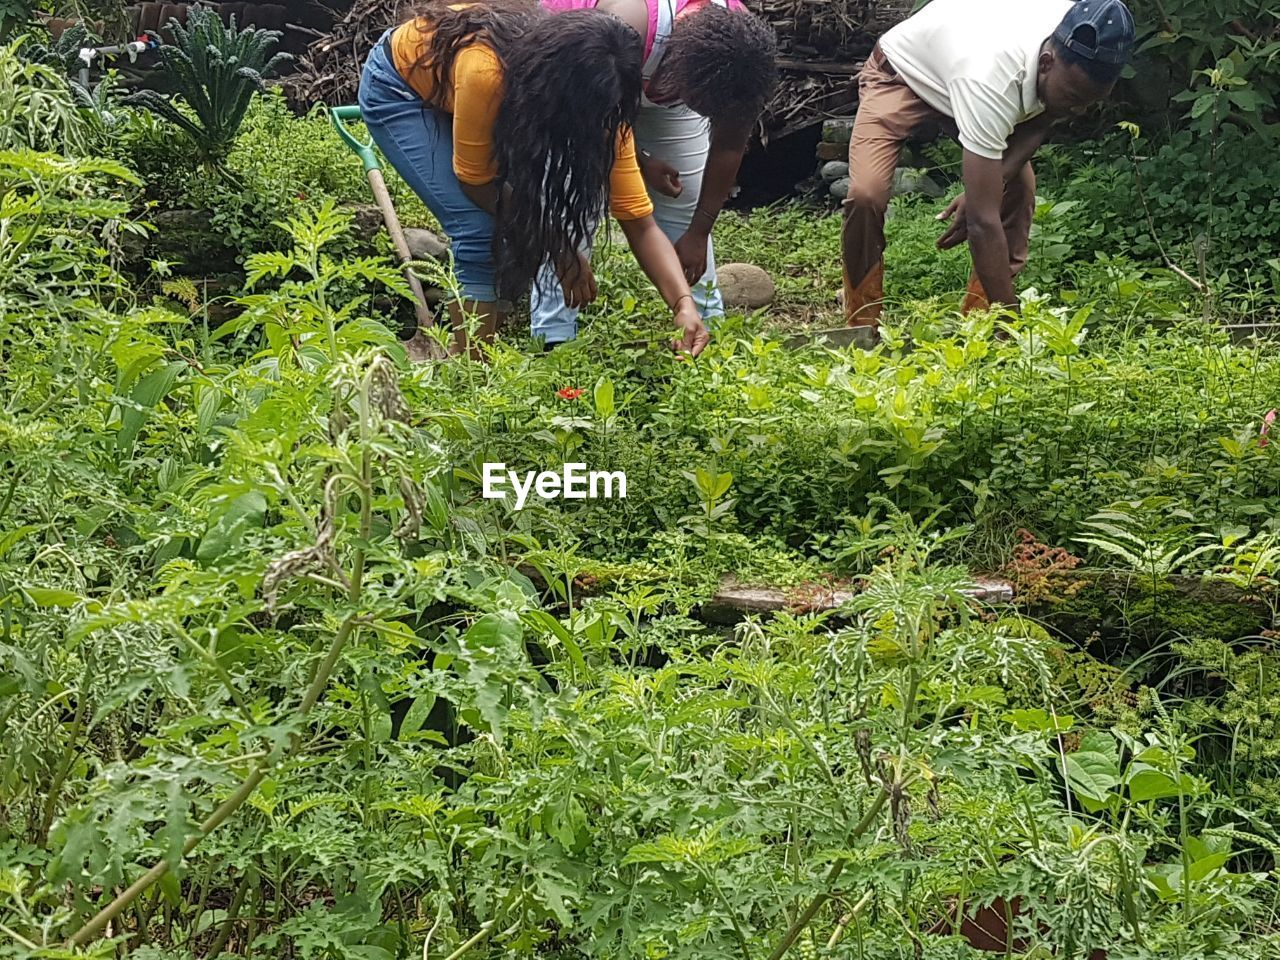 real people, togetherness, agriculture, growth, day, field, men, vegetable, casual clothing, working, women, lifestyles, outdoors, plant, farmer, nature, standing, rural scene, food, healthy eating, freshness, friendship, volunteer, adult, people